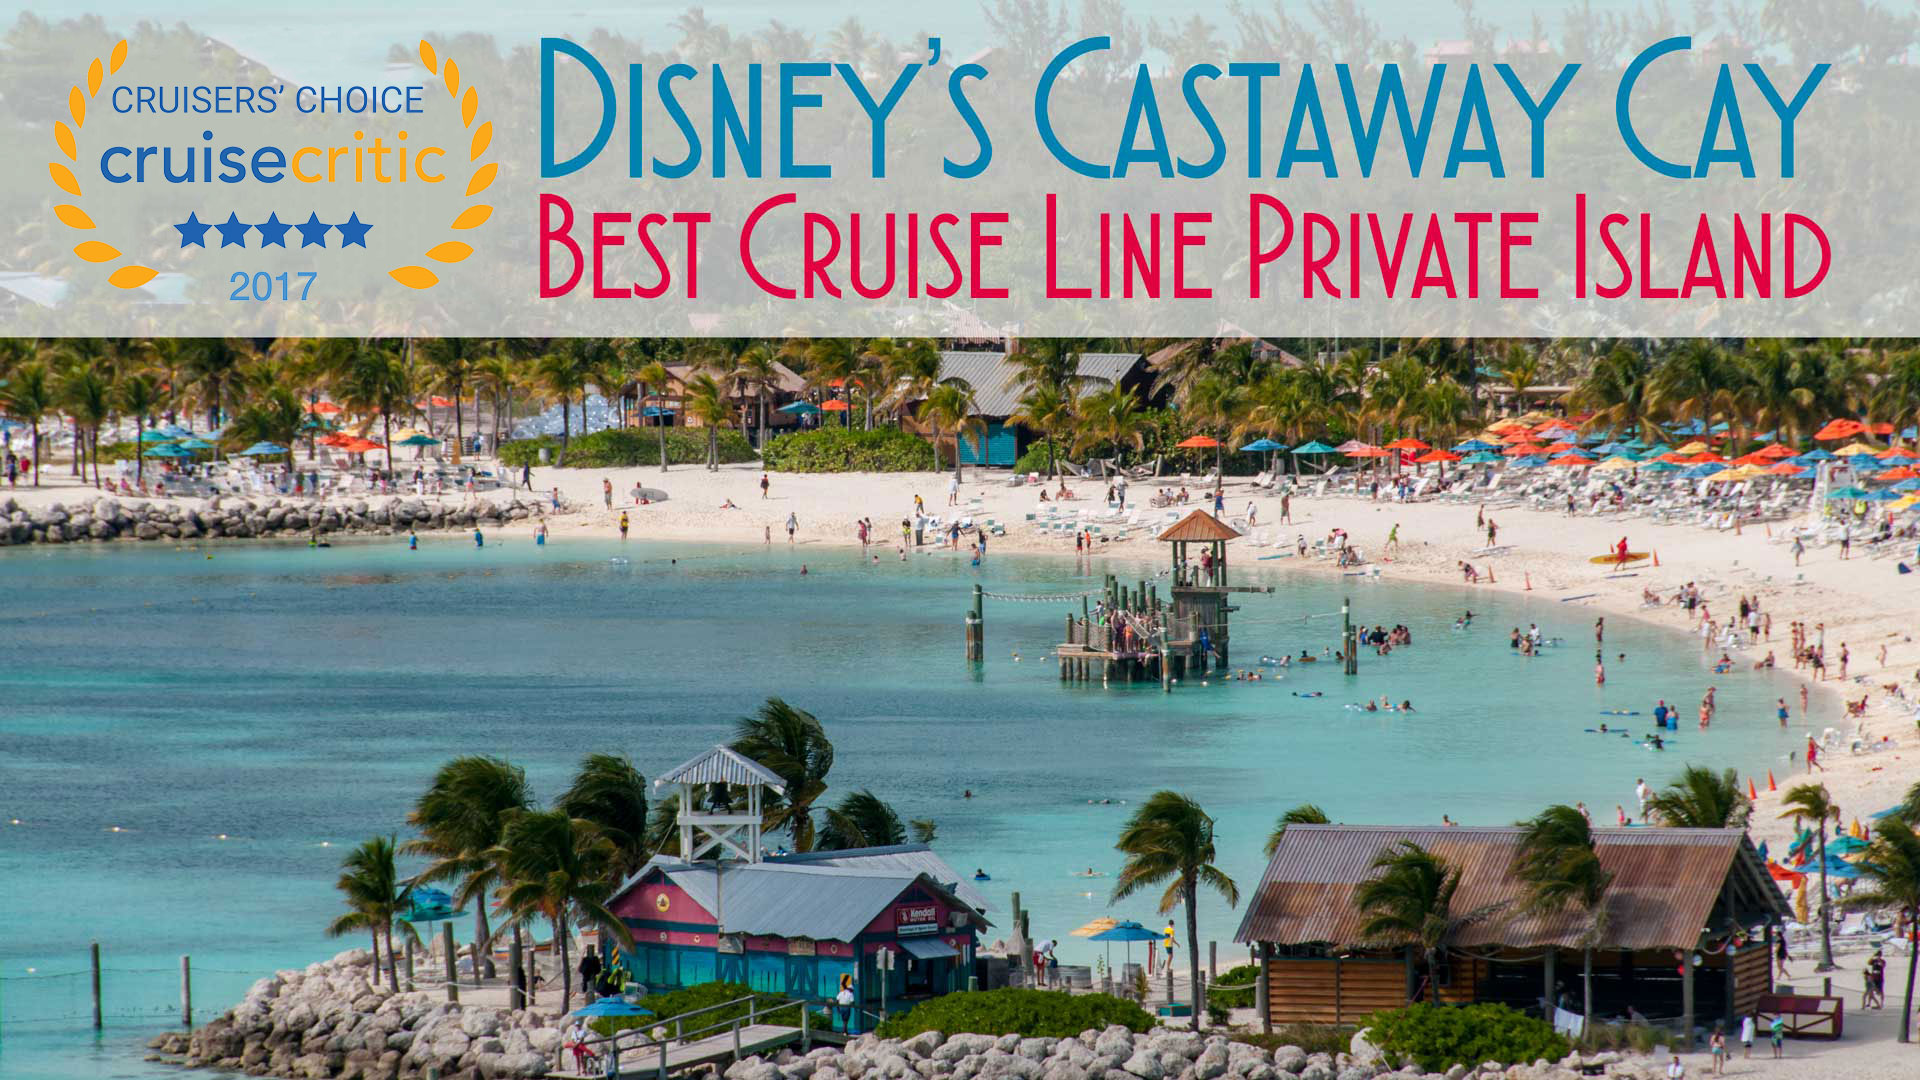 Cruise Critic 2017 Best Private Island Castaway Cay